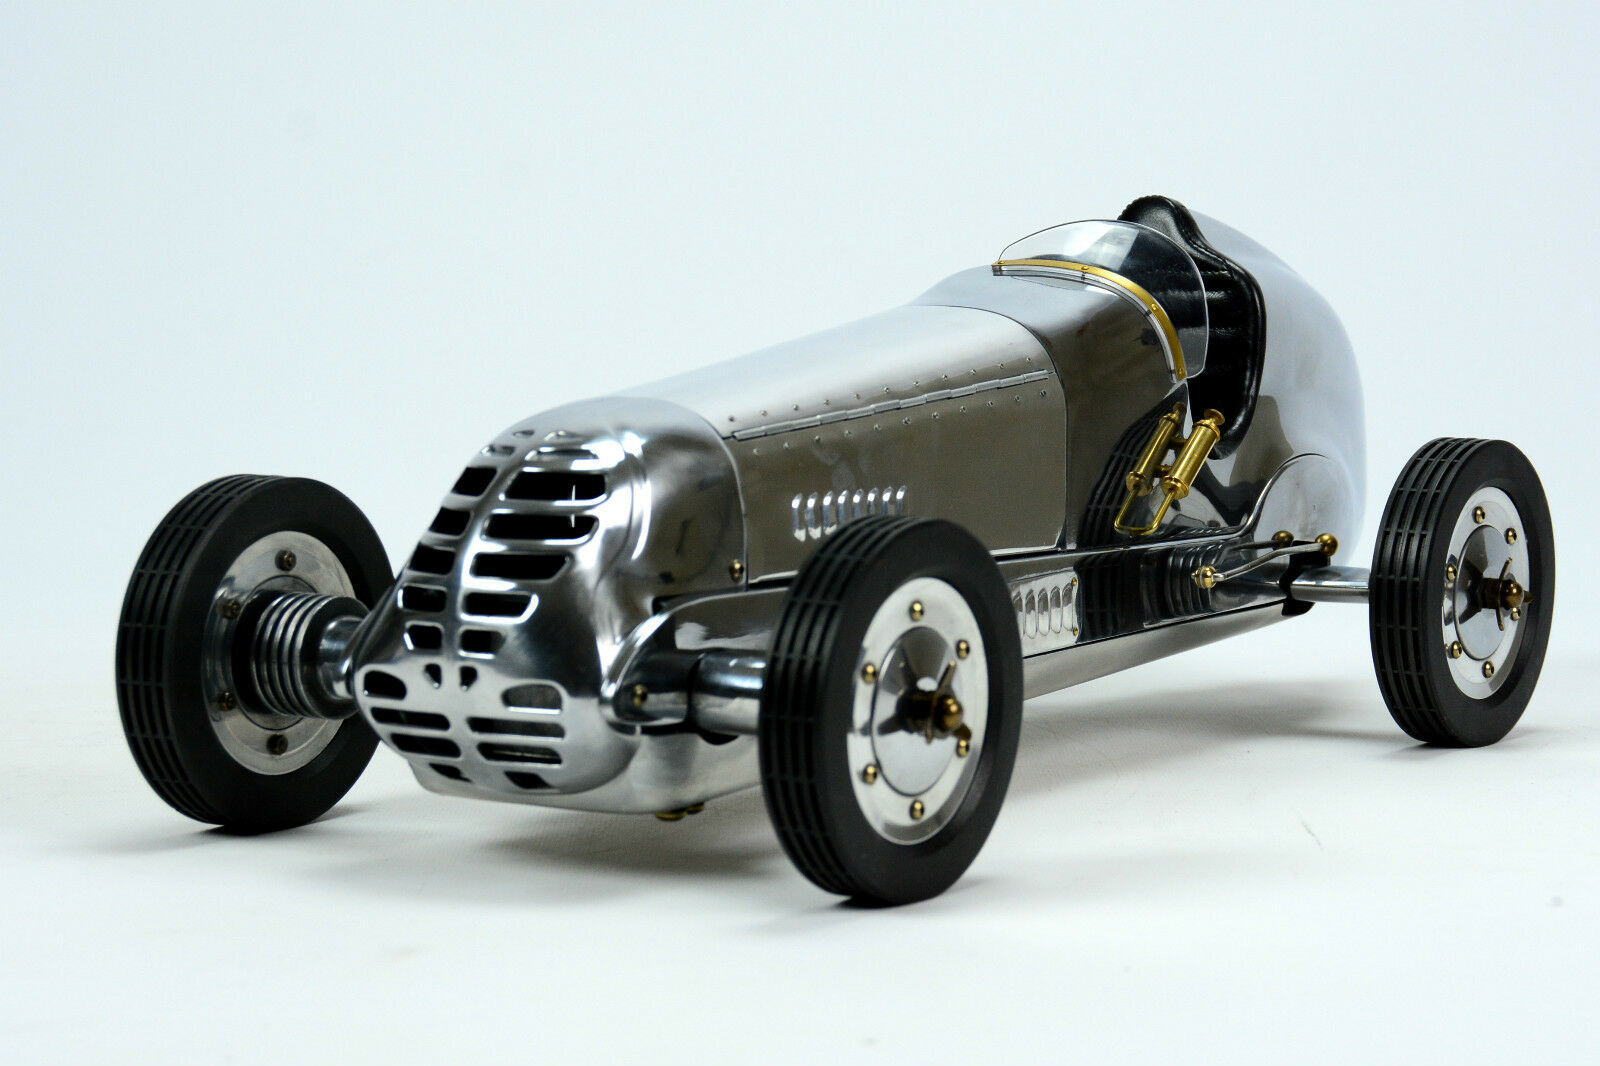 BB Korn Indianapolis Racing Spindizzy 1930 S Tether Car Model PC013